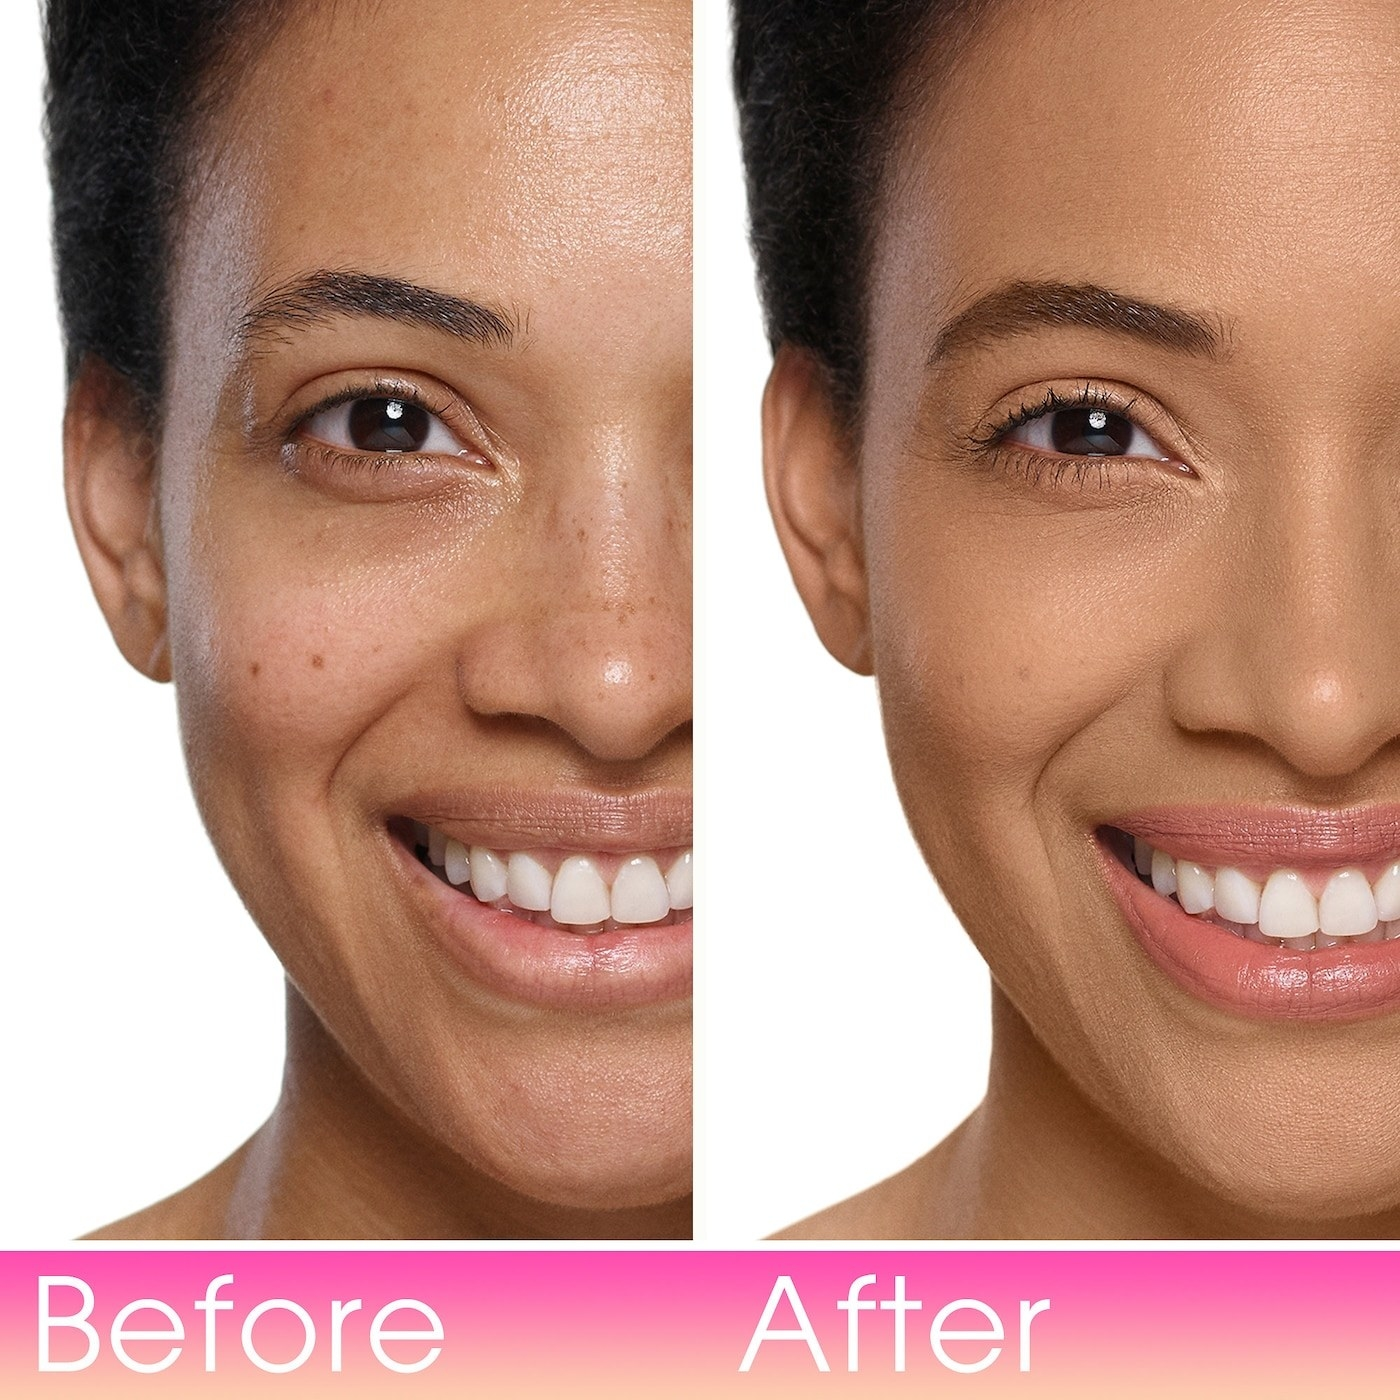 model before/after showing full coverage after applying foundation